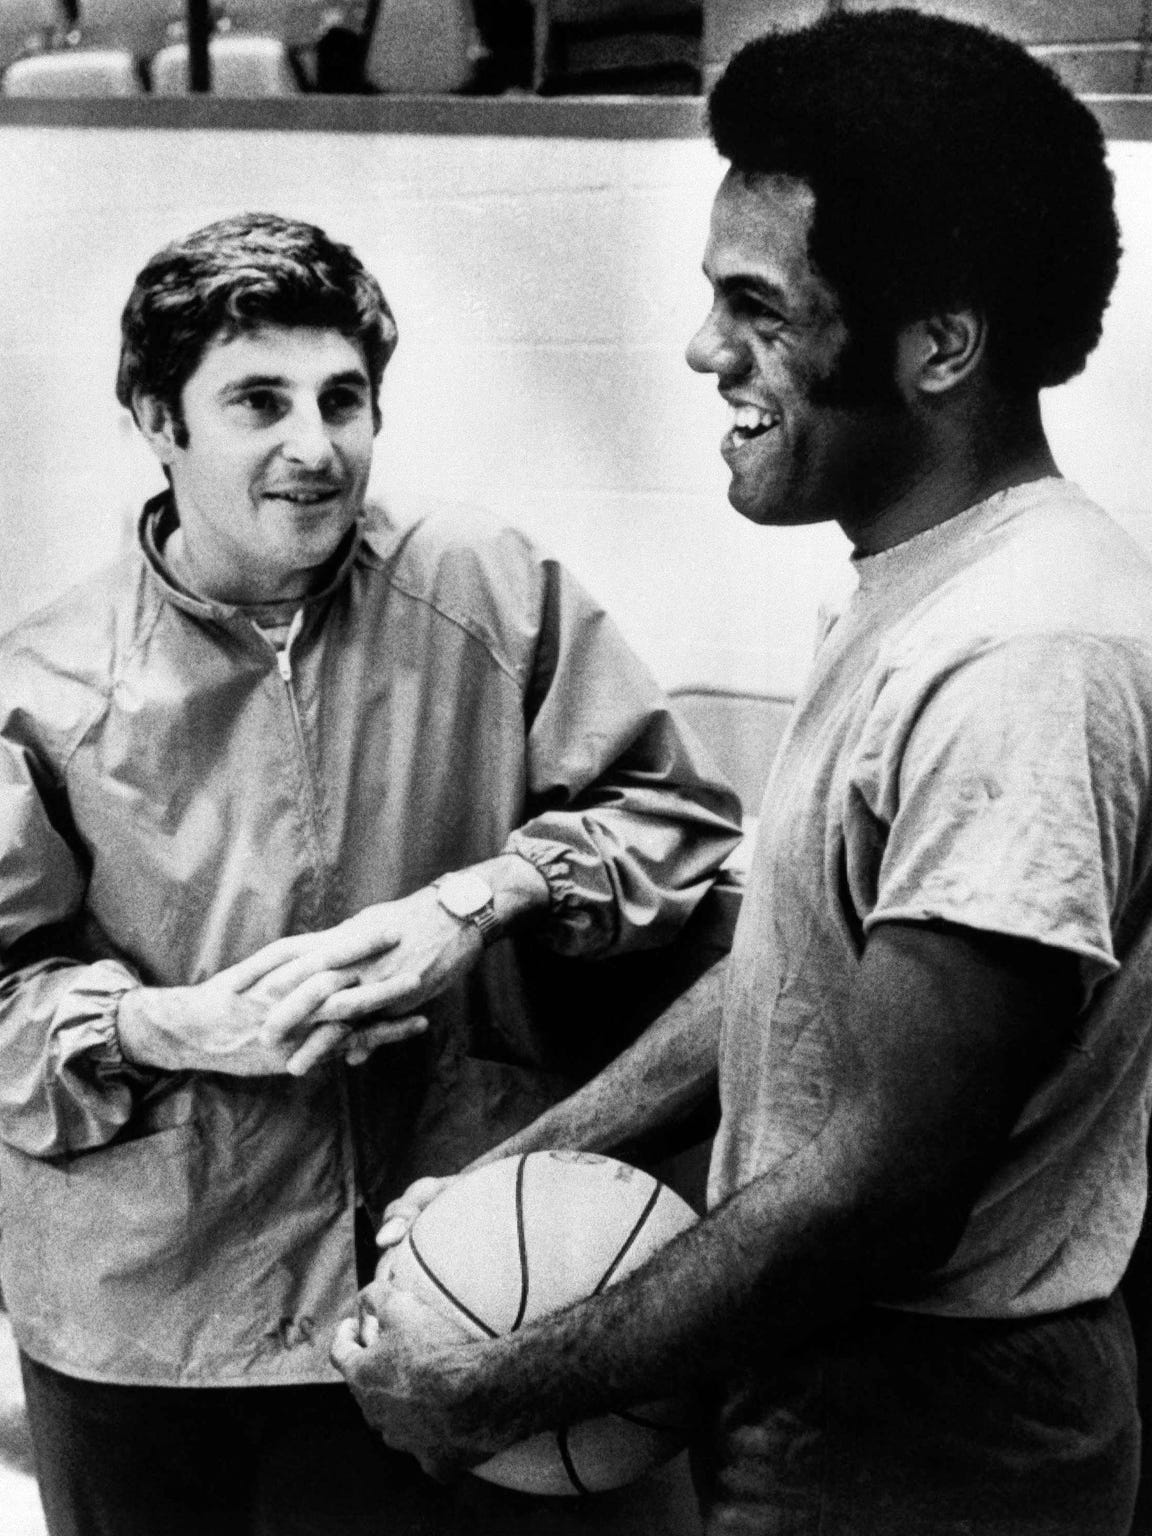 Bobby Knight and Scott May enjoy a laugh.